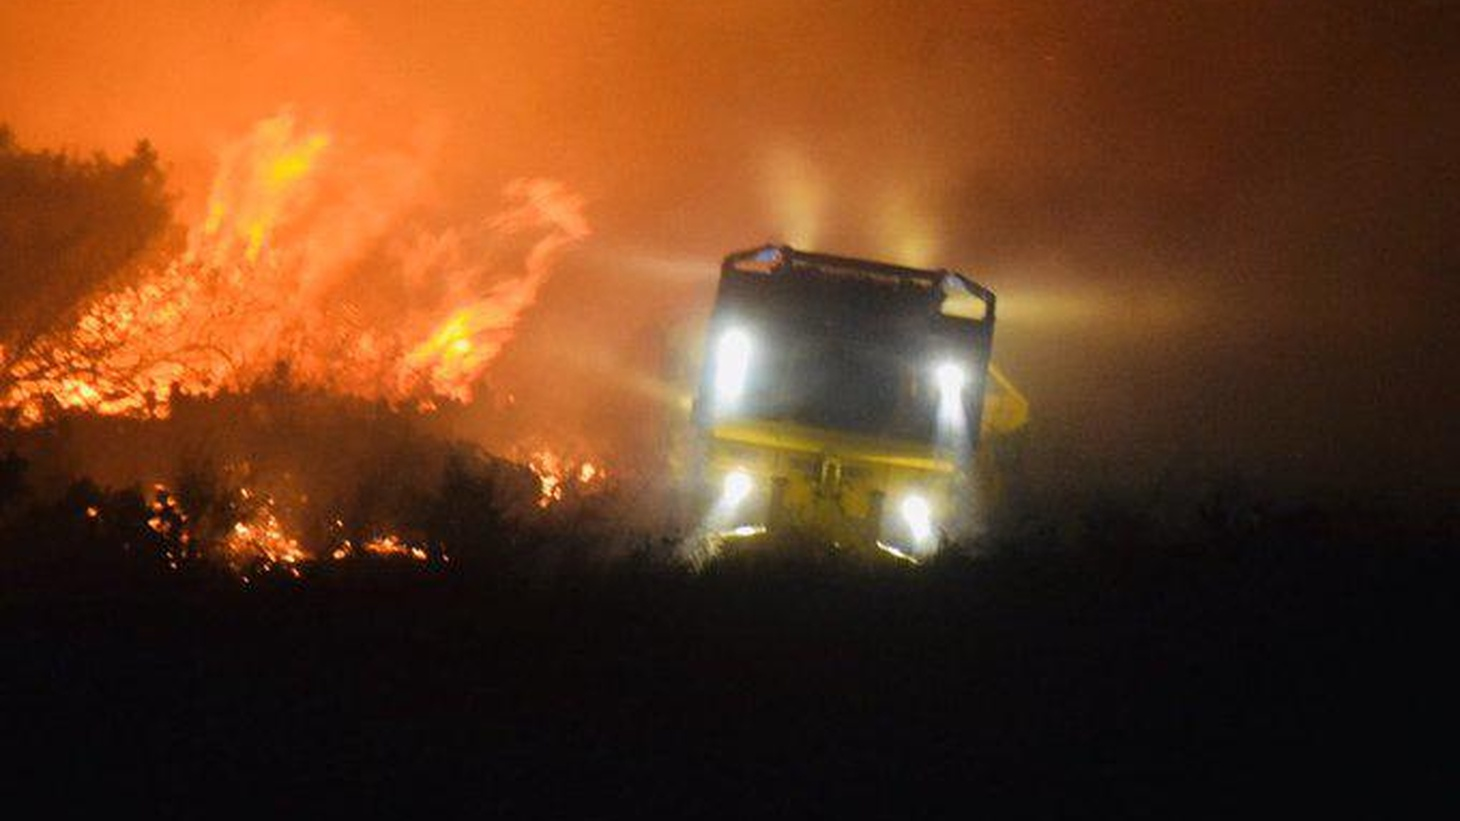 Ventura County Fire Truck fighting the Easy Fire.